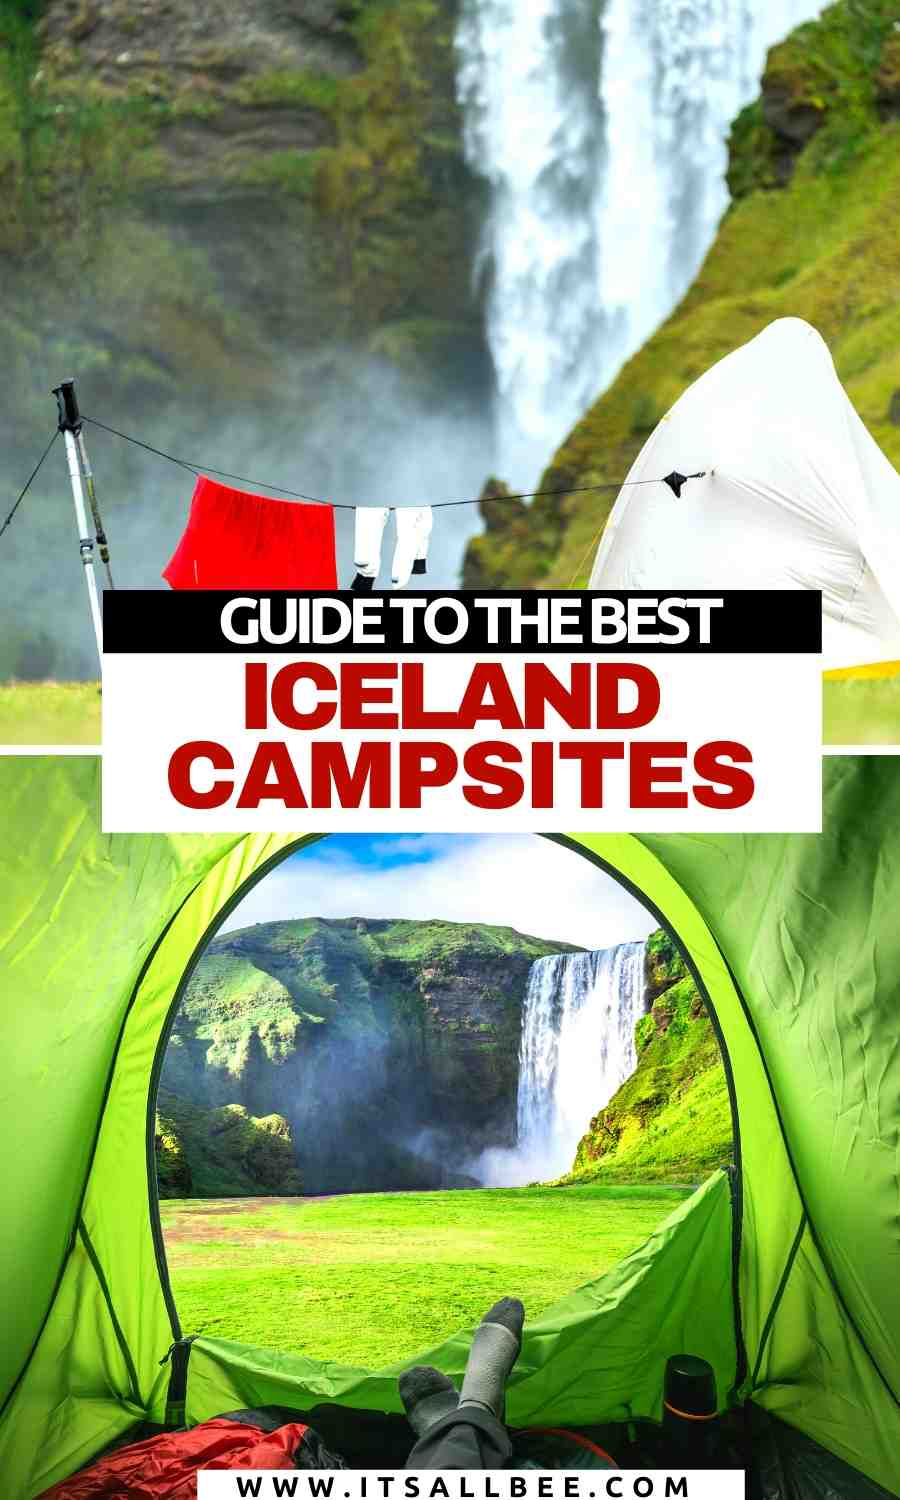 Camping near blue lagoon | Places to camp in Iceland | camping in Iceland | Campsites near waterfalls in Iceland